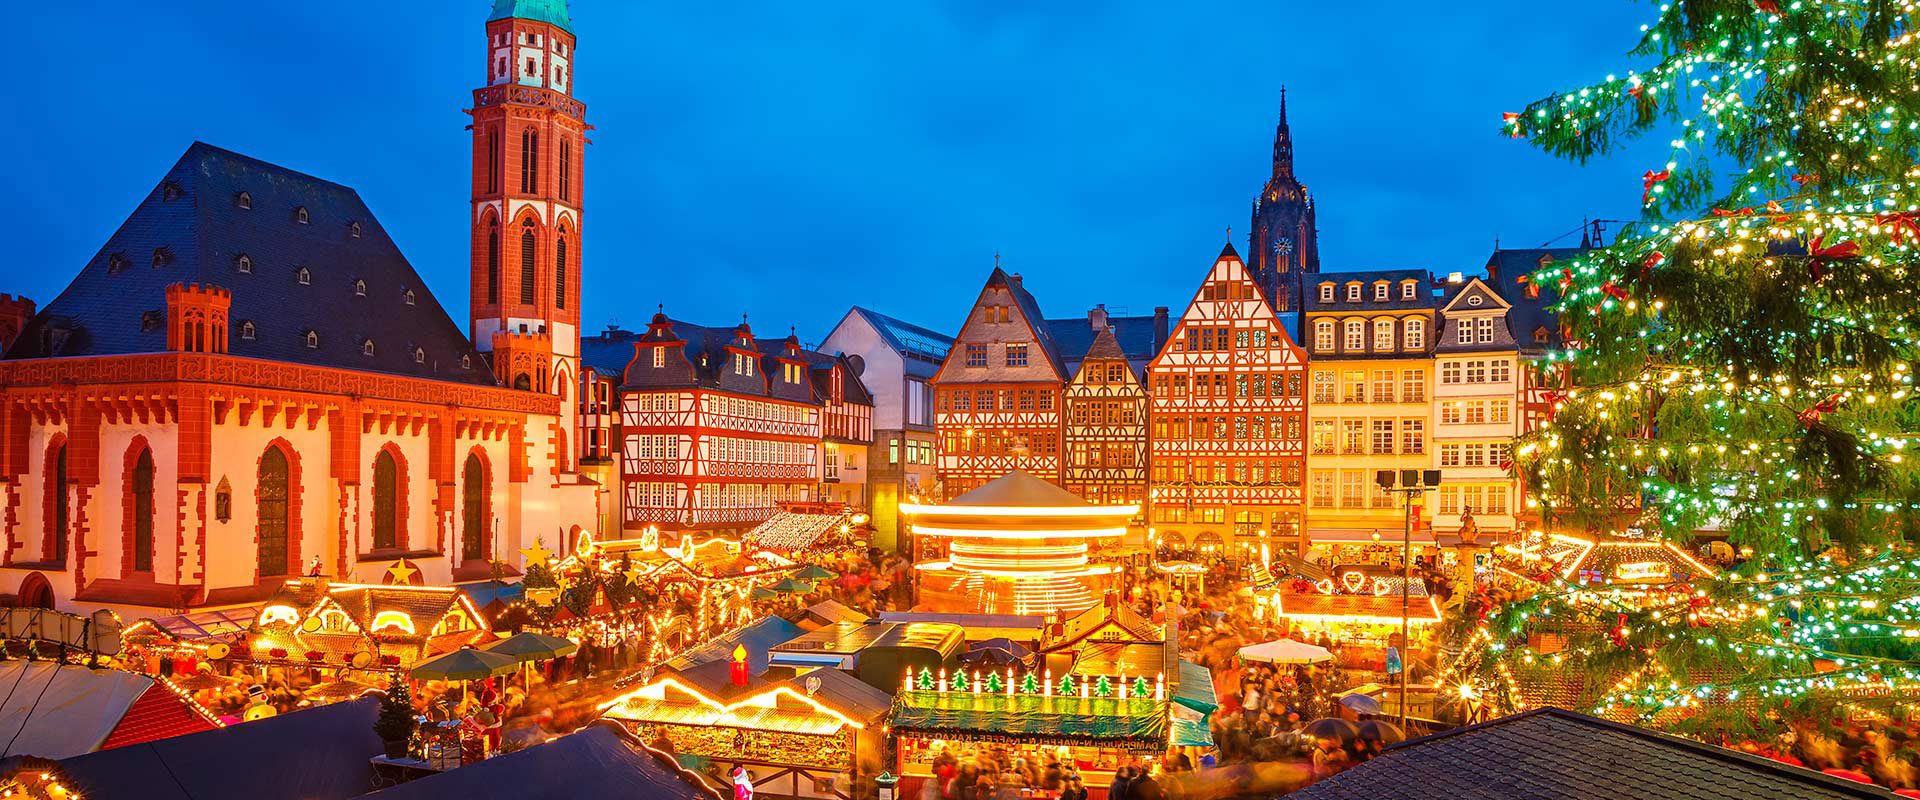 Christmas Cruises 2019.Rhine Christmas Markets With Switzerland 12 Days From Zurich To Amsterdam